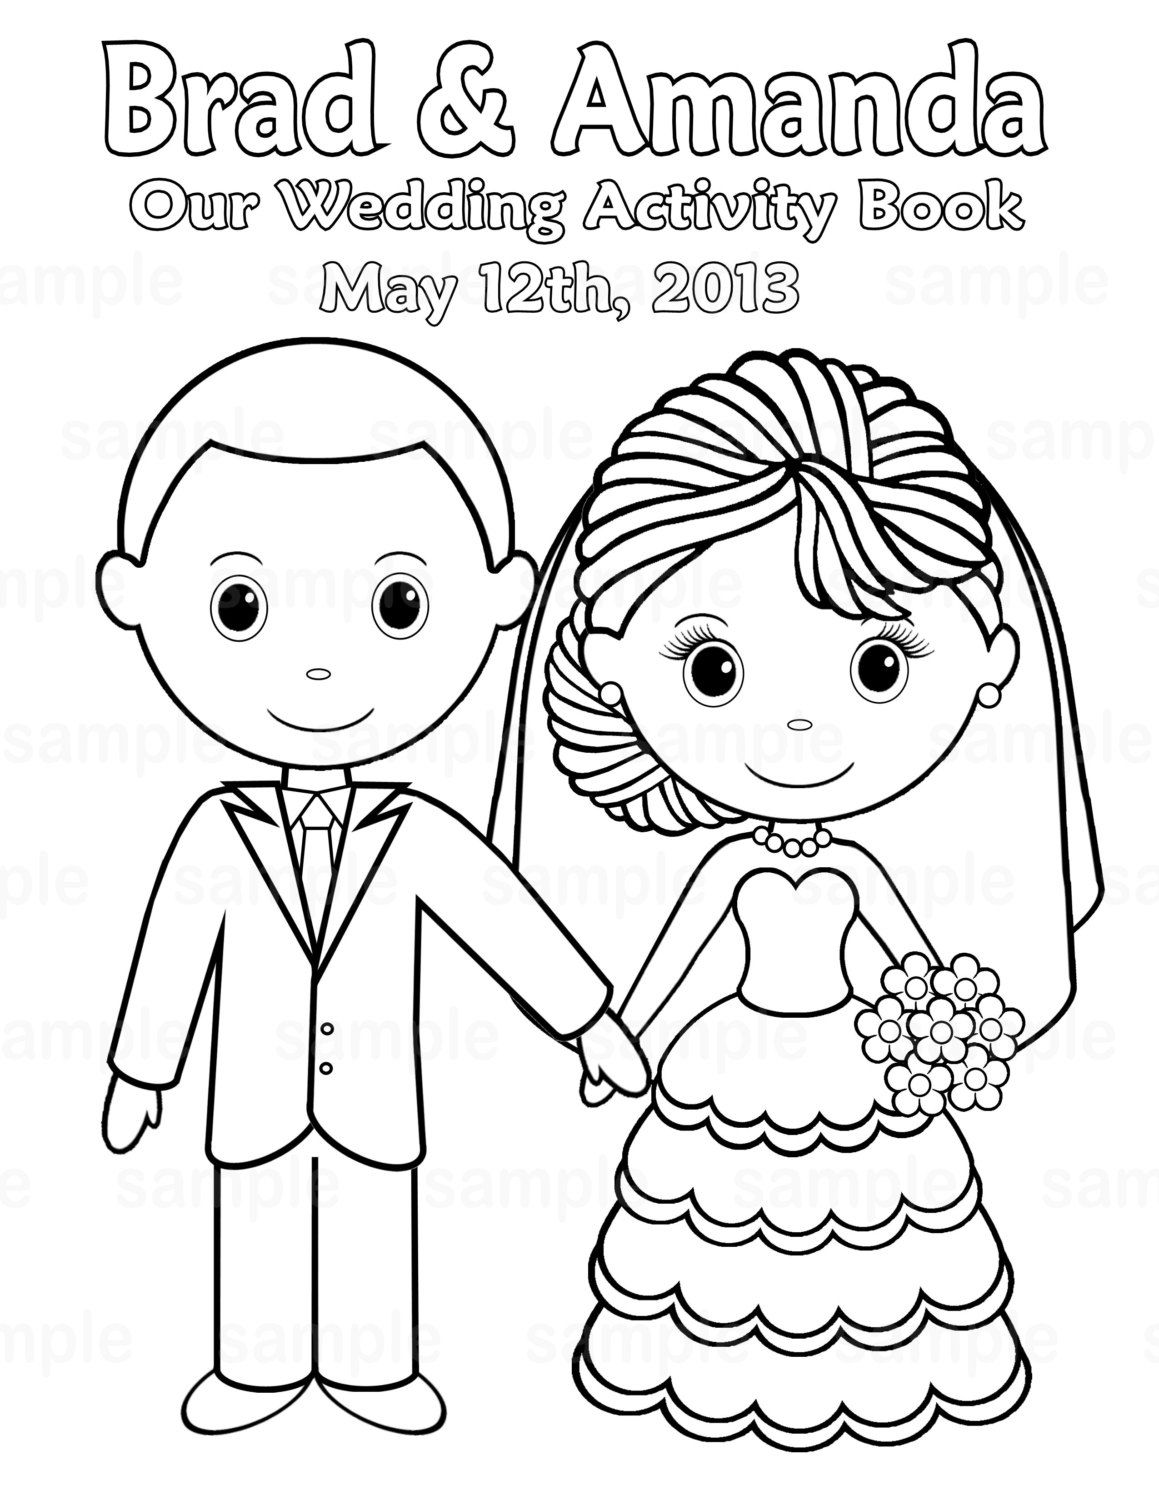 printable personalized wedding coloring activity by sugarpiestudio 400 kids wedding activitiescoloring book - Wedding Coloring Books For Children